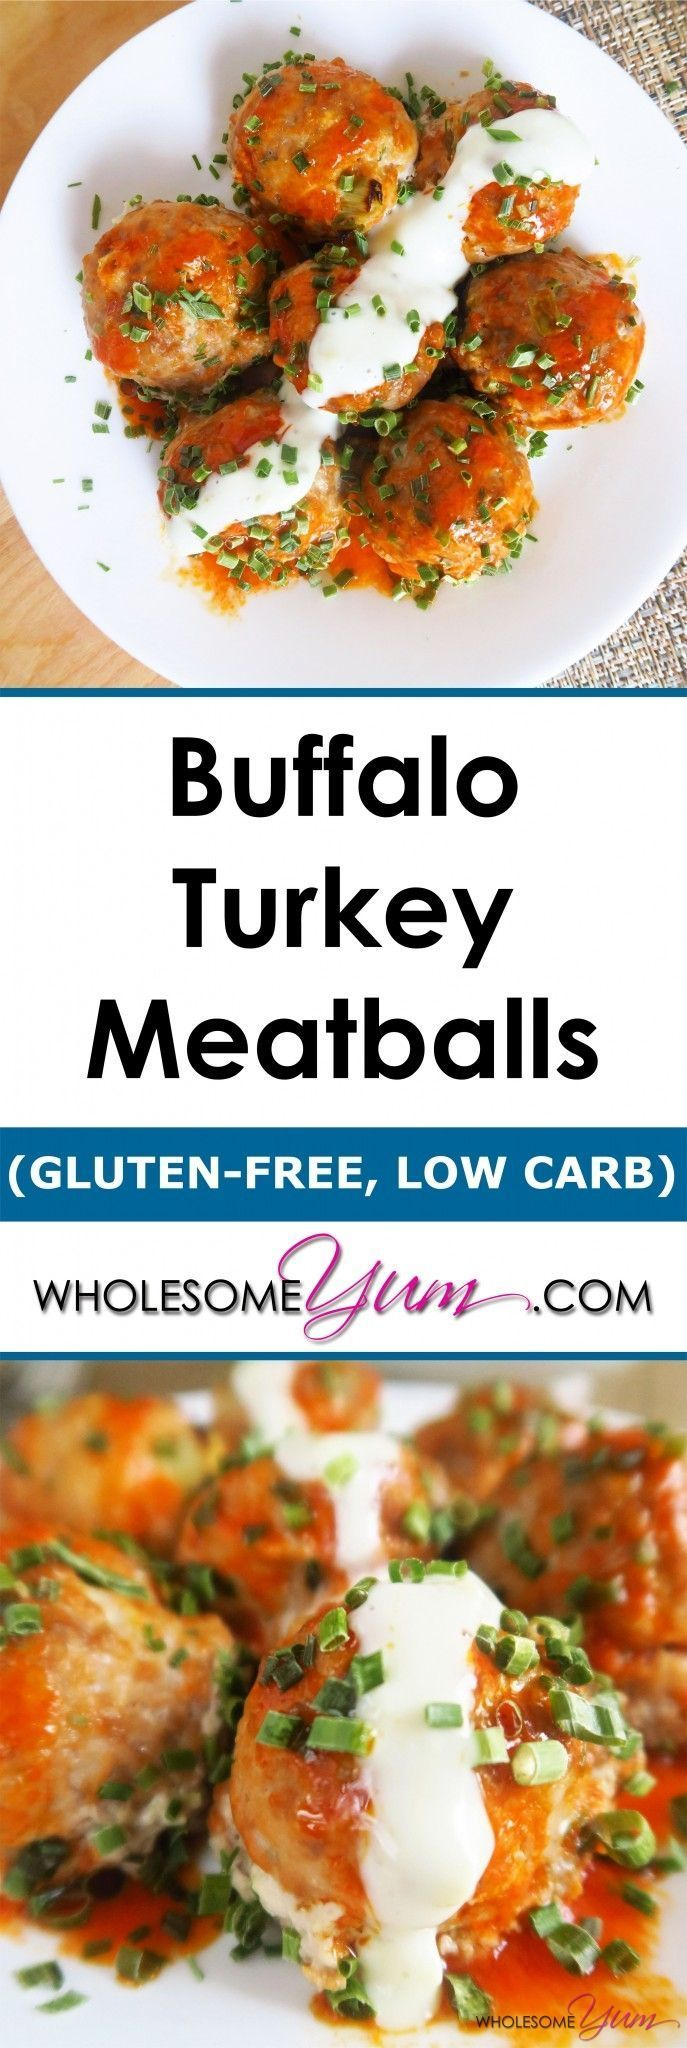 Buffalo Turkey Meatballs (Grain-free, Low Carb) | Wholesome Yum – Natural, glute… | Delightish